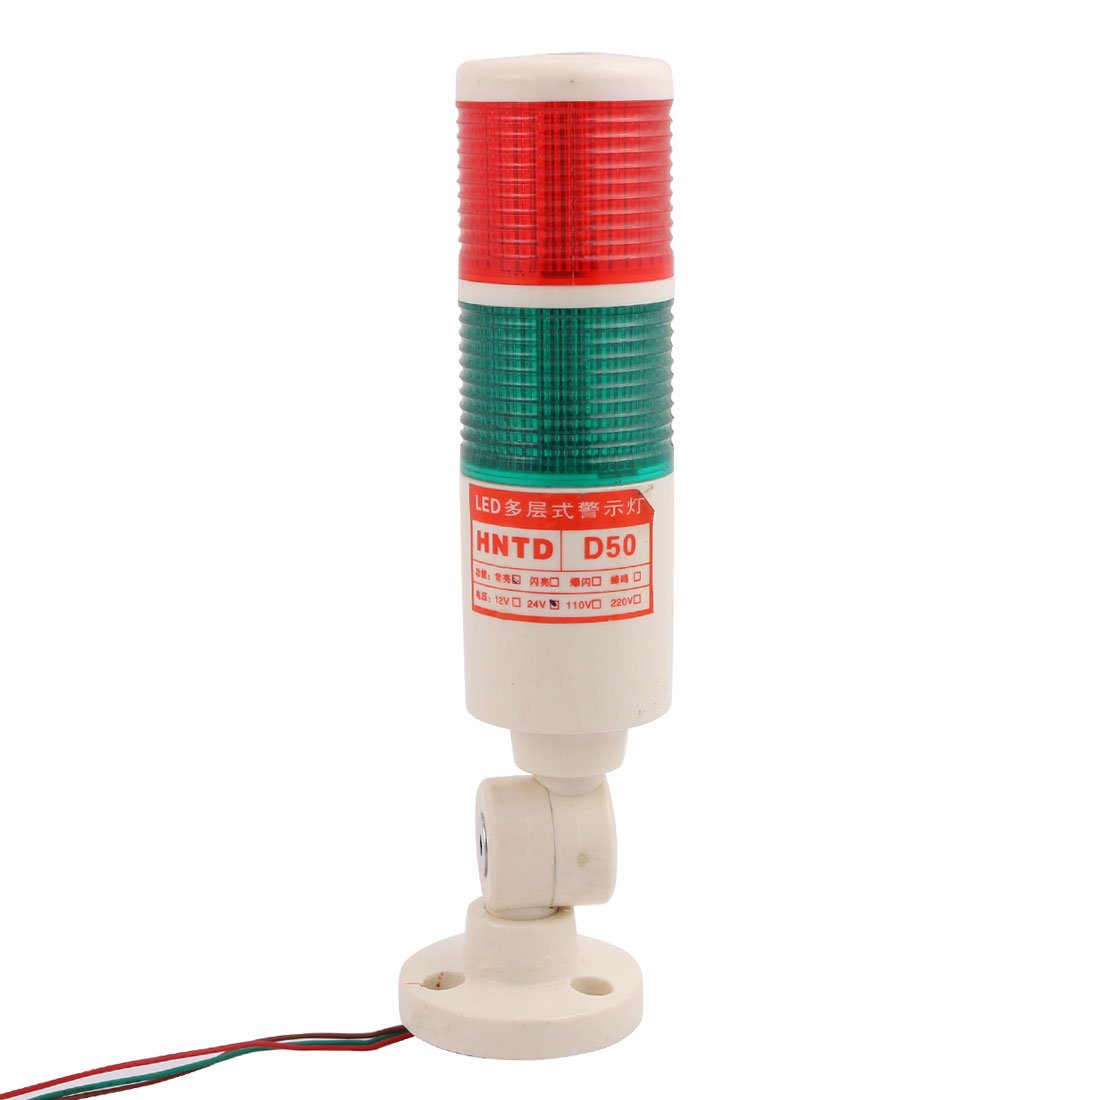 uxcell DC 24V Red Green Tower Lamp Indicator Safety Industrial Signal Warning LED Light